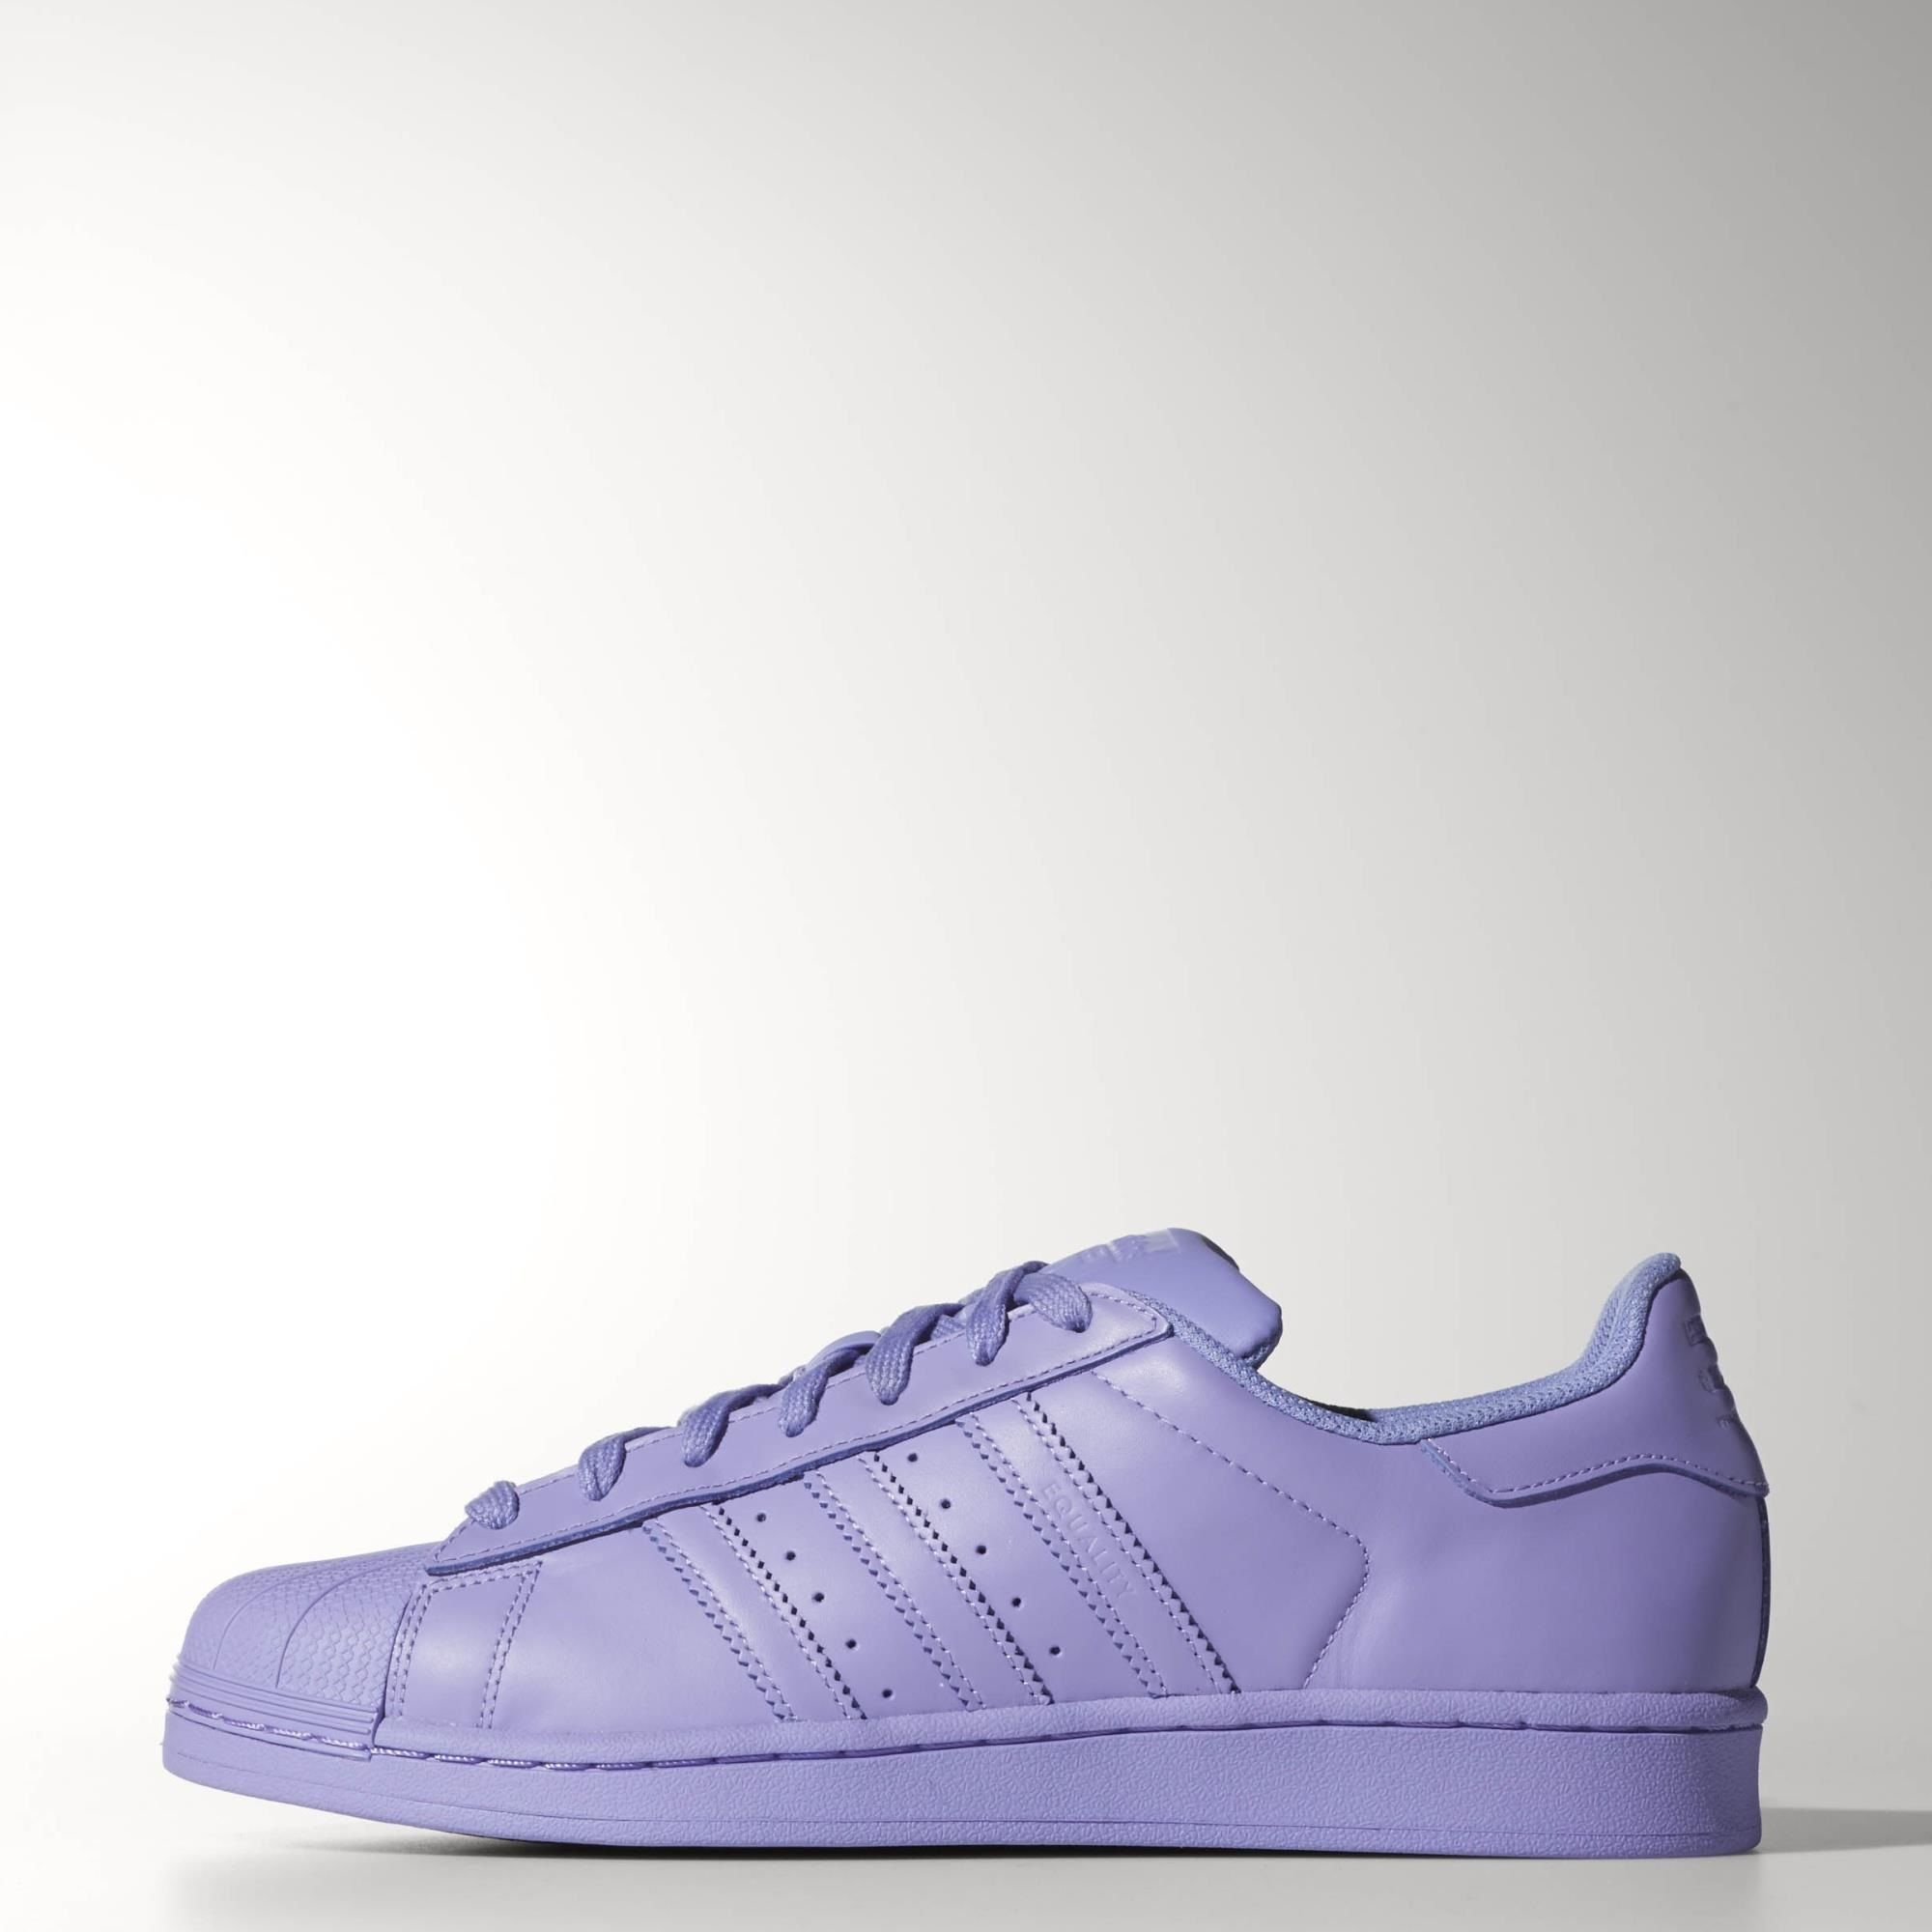 adidas - Superstar Supercolor Pack Shoes  052cb9c8f